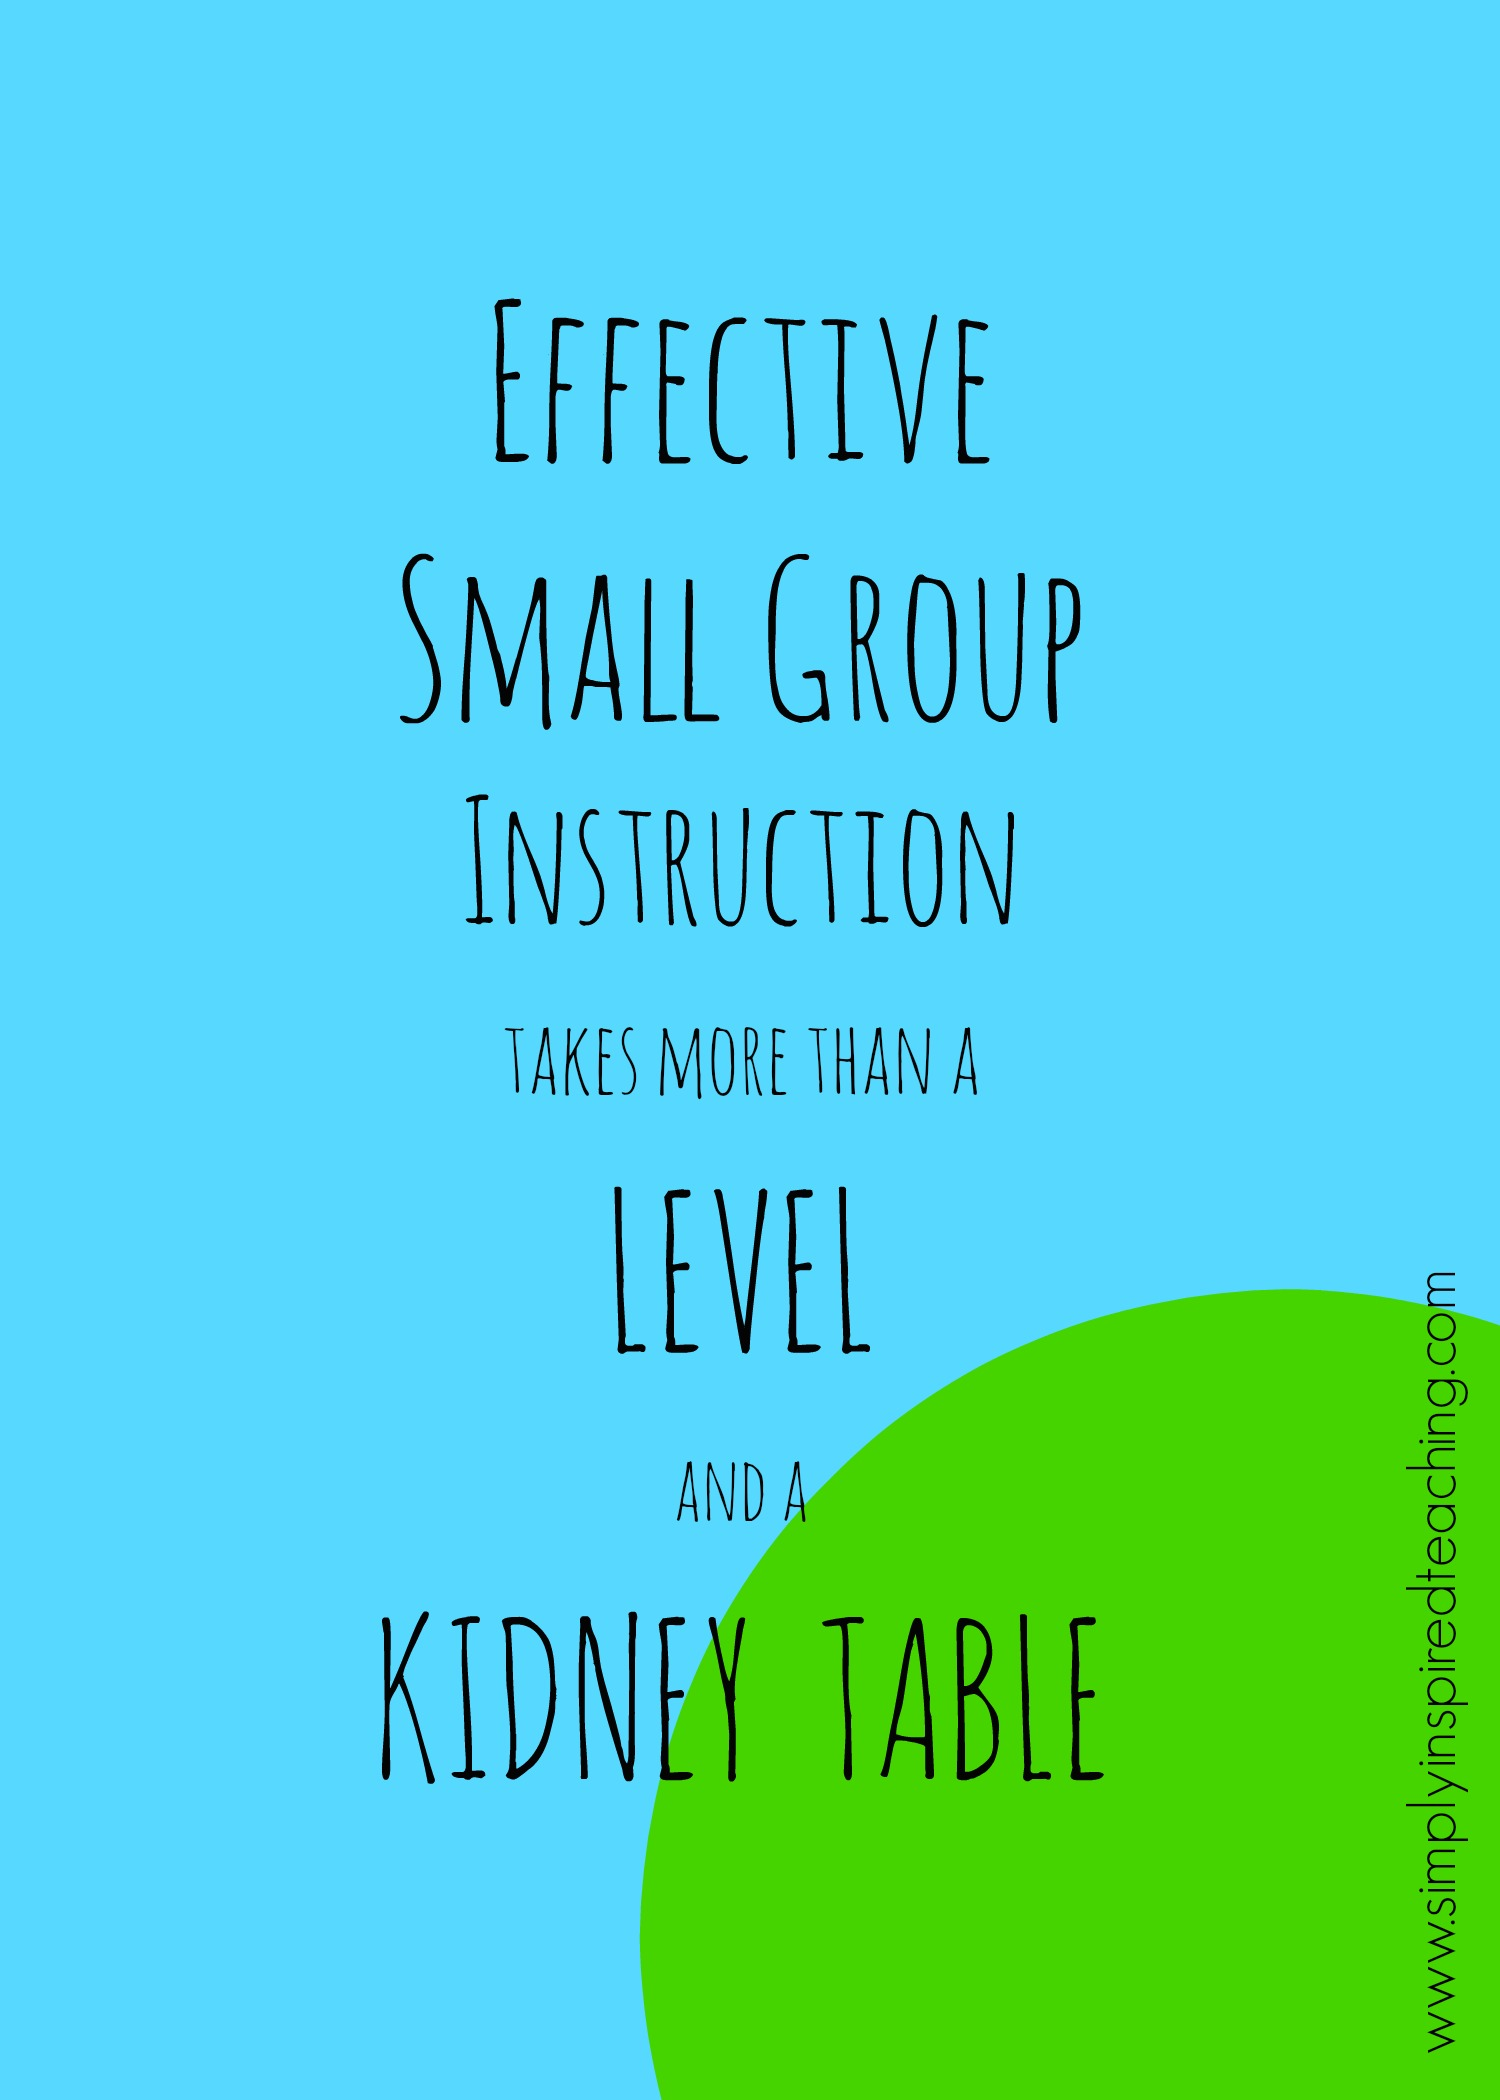 Small Group Instruction More Than A Level And Kidney Table Simply